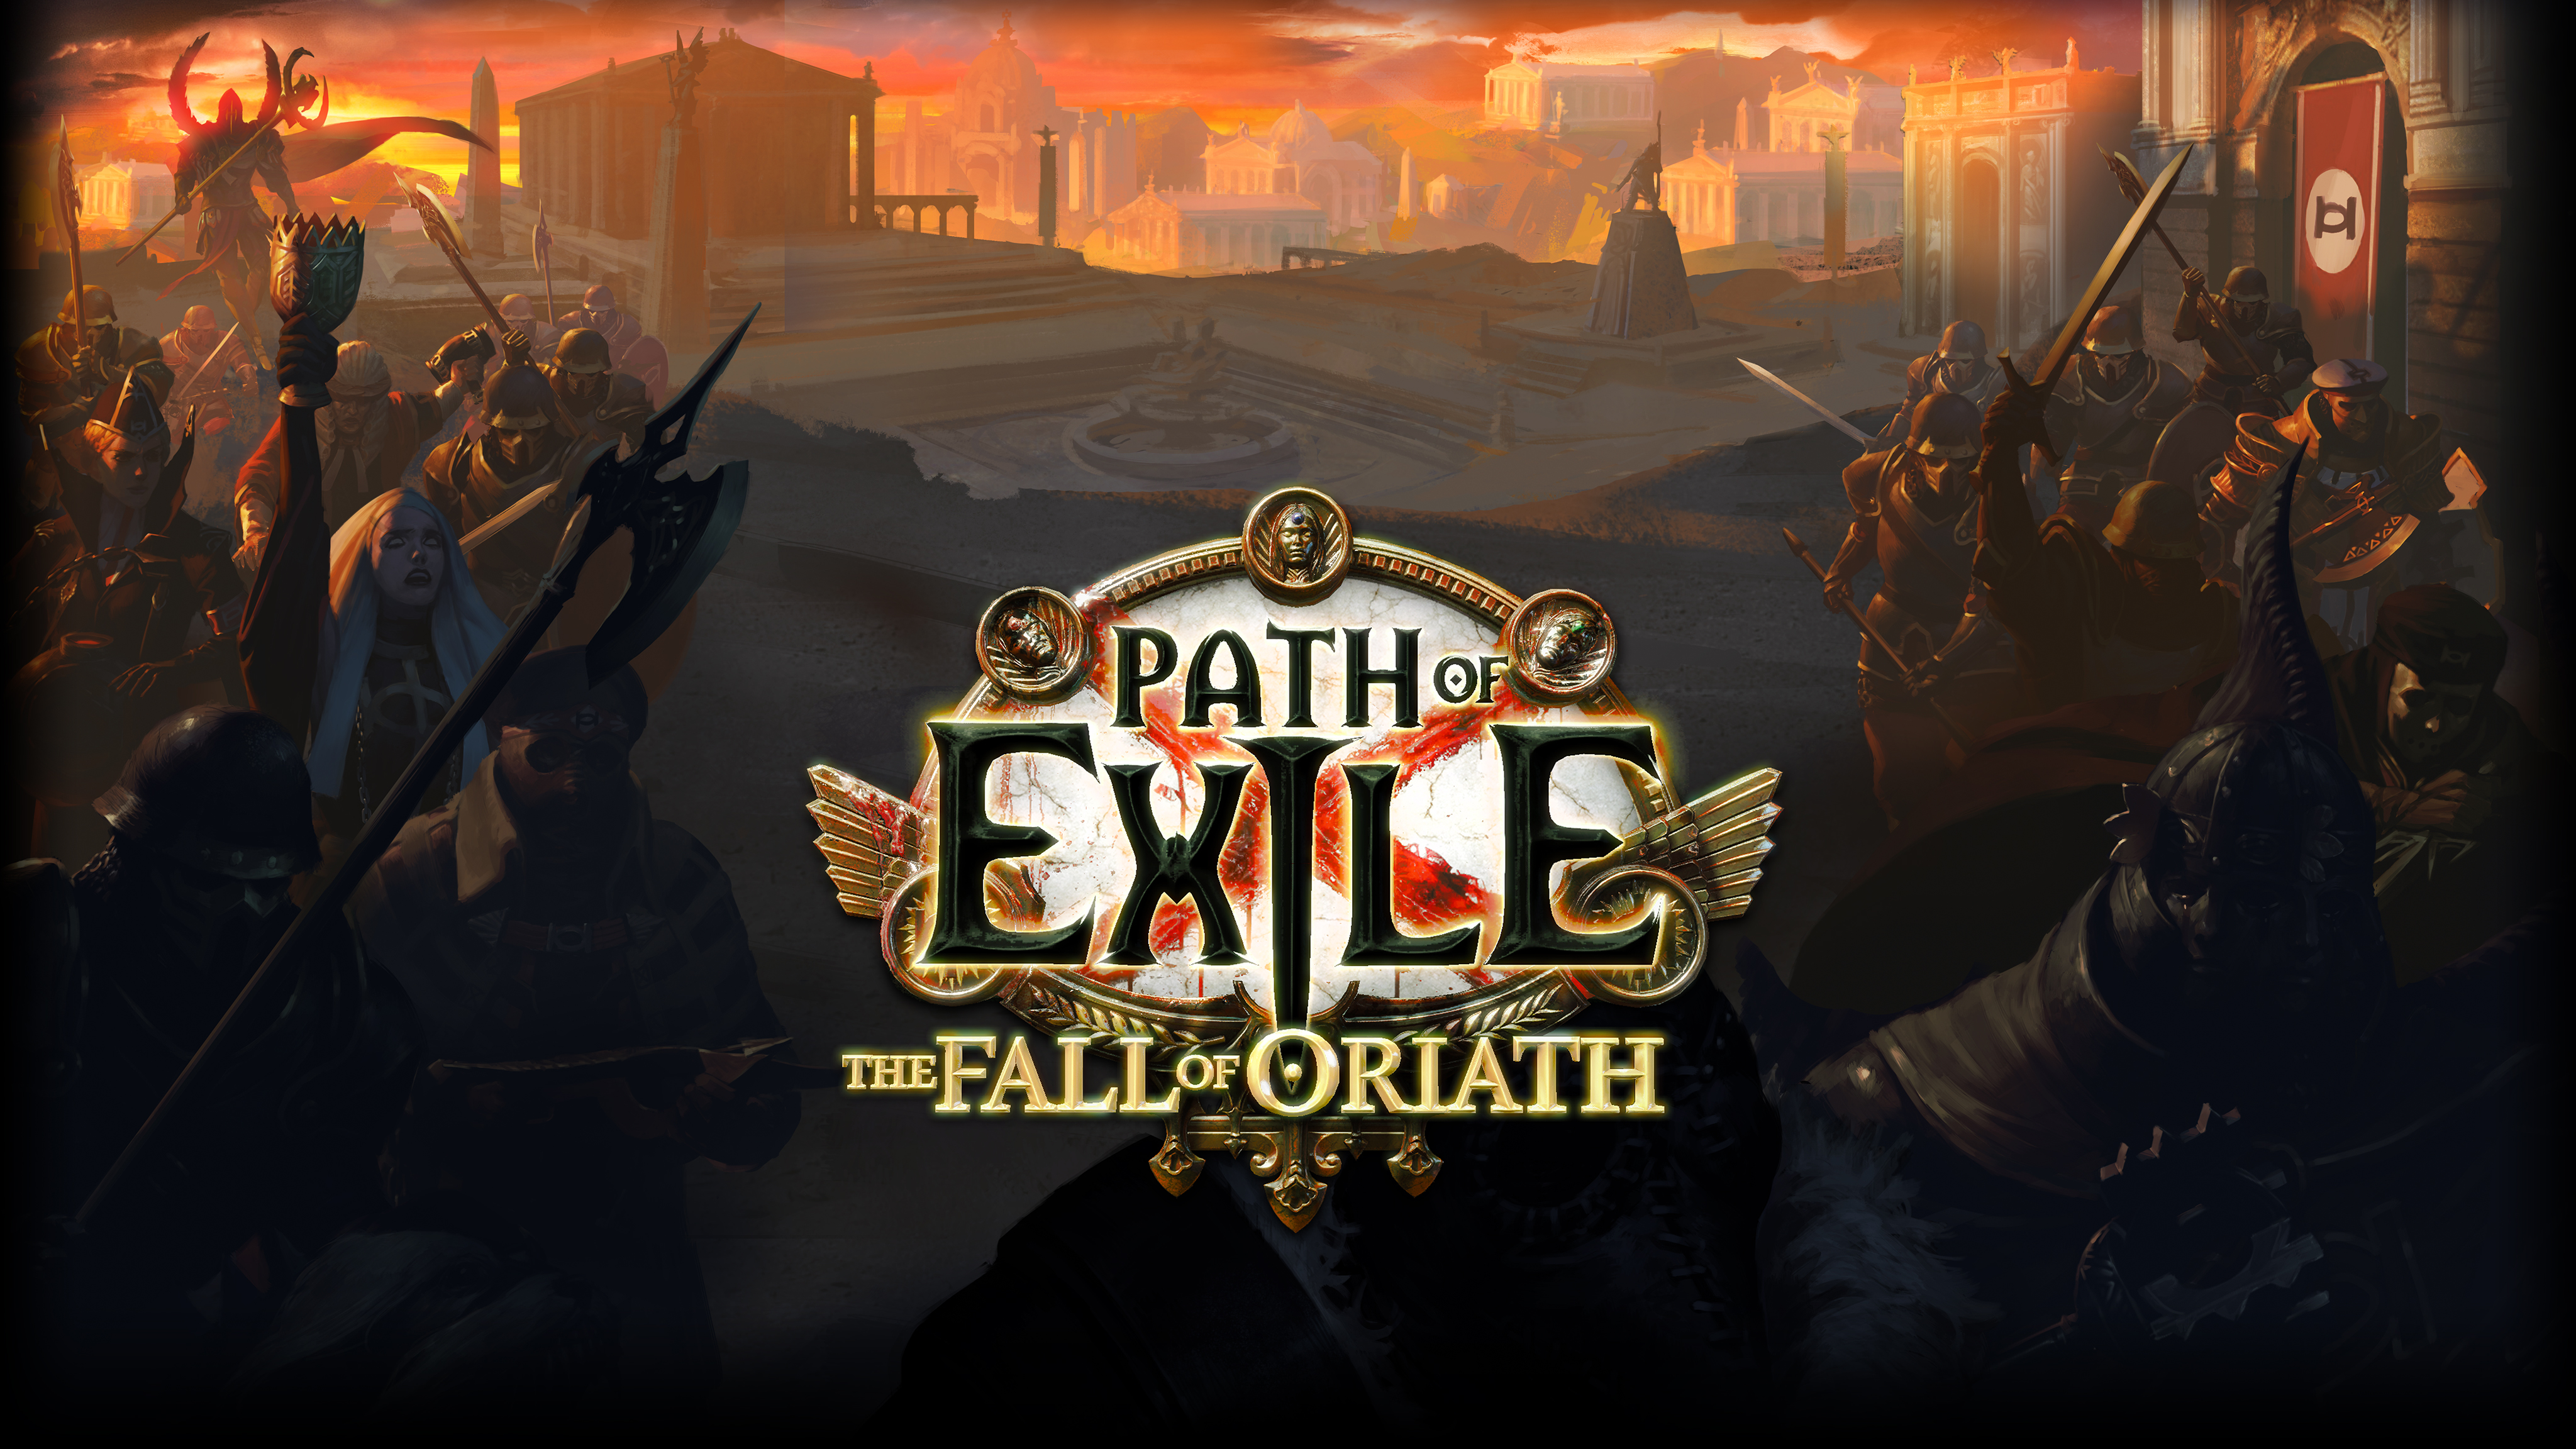 Poe Fall Of Oriath Wallpapers Wallpapers Oficiales De The Fall Of Oriath Mediavida